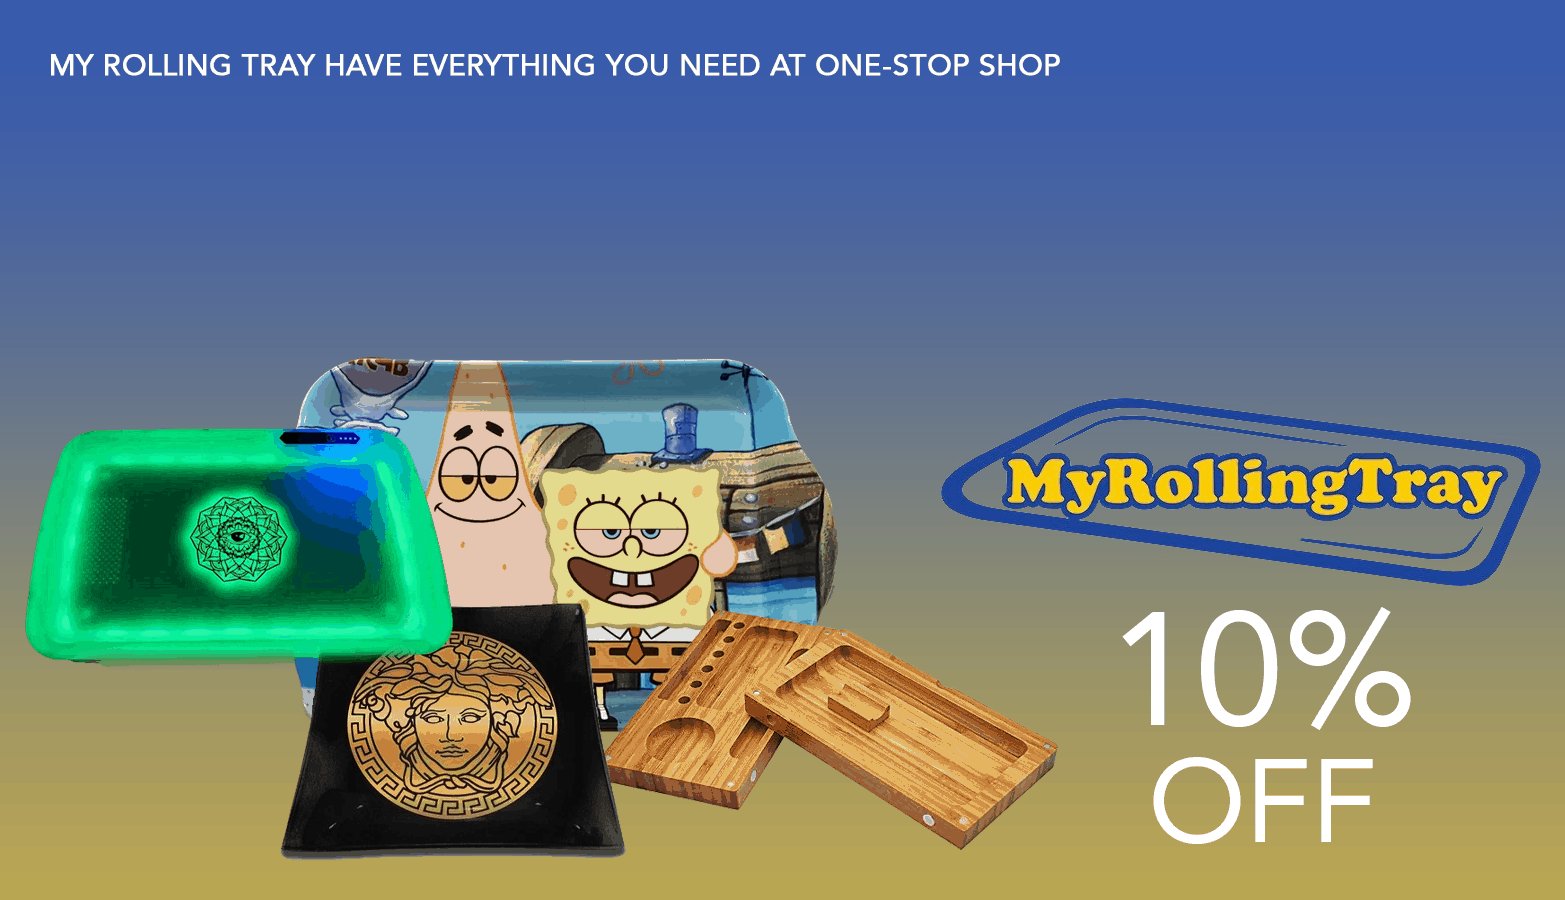 My Rolling Tray Cannabis Accessories Coupons Offer Website